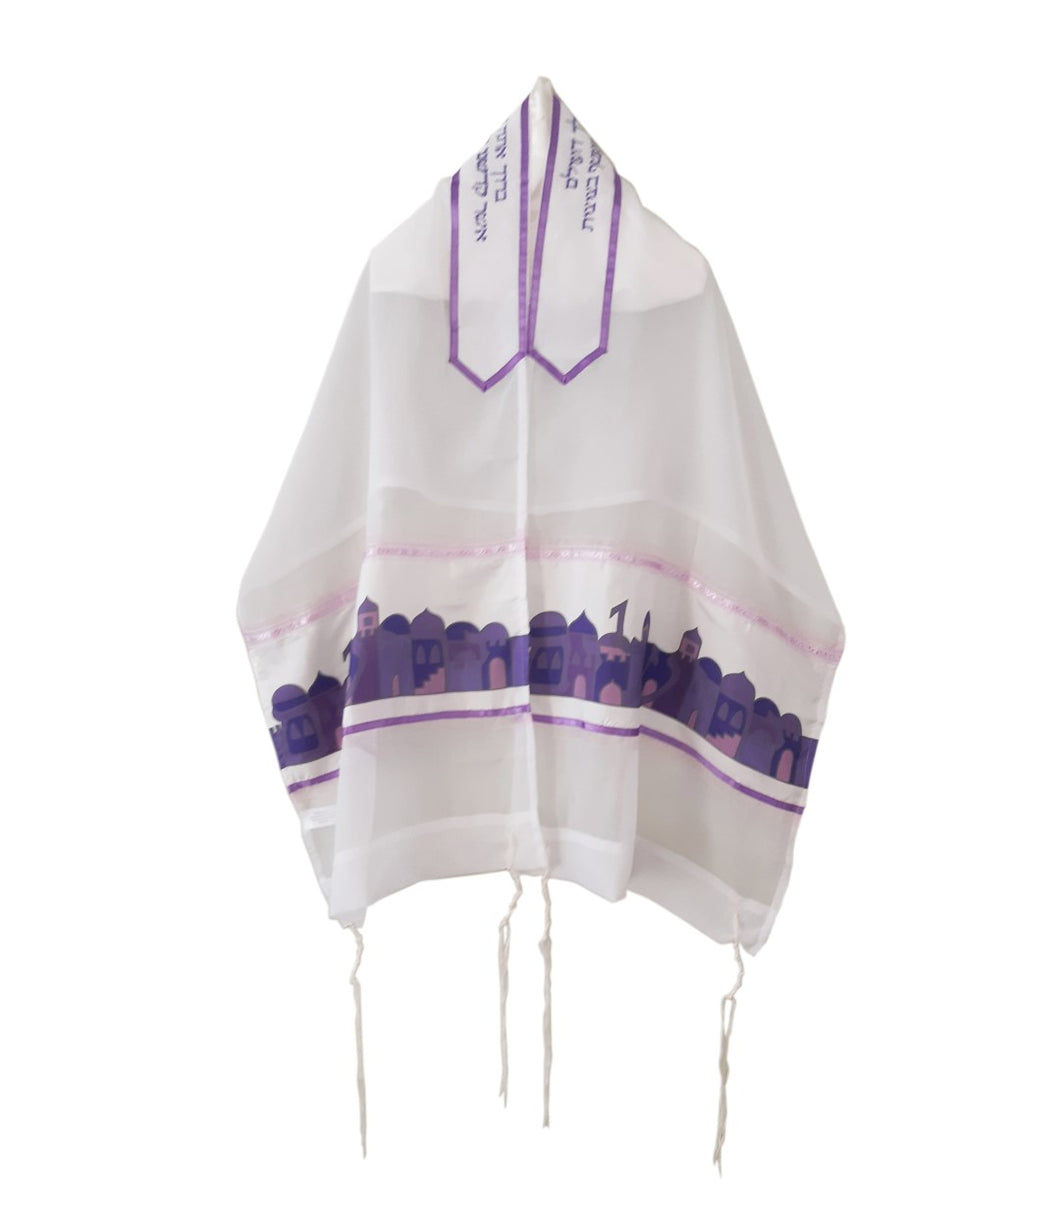 Jerusalem Name and Landscape in Purple Silk shades, Bat Mitzvah Tallit, Girl's Tallit, Tallit for Women